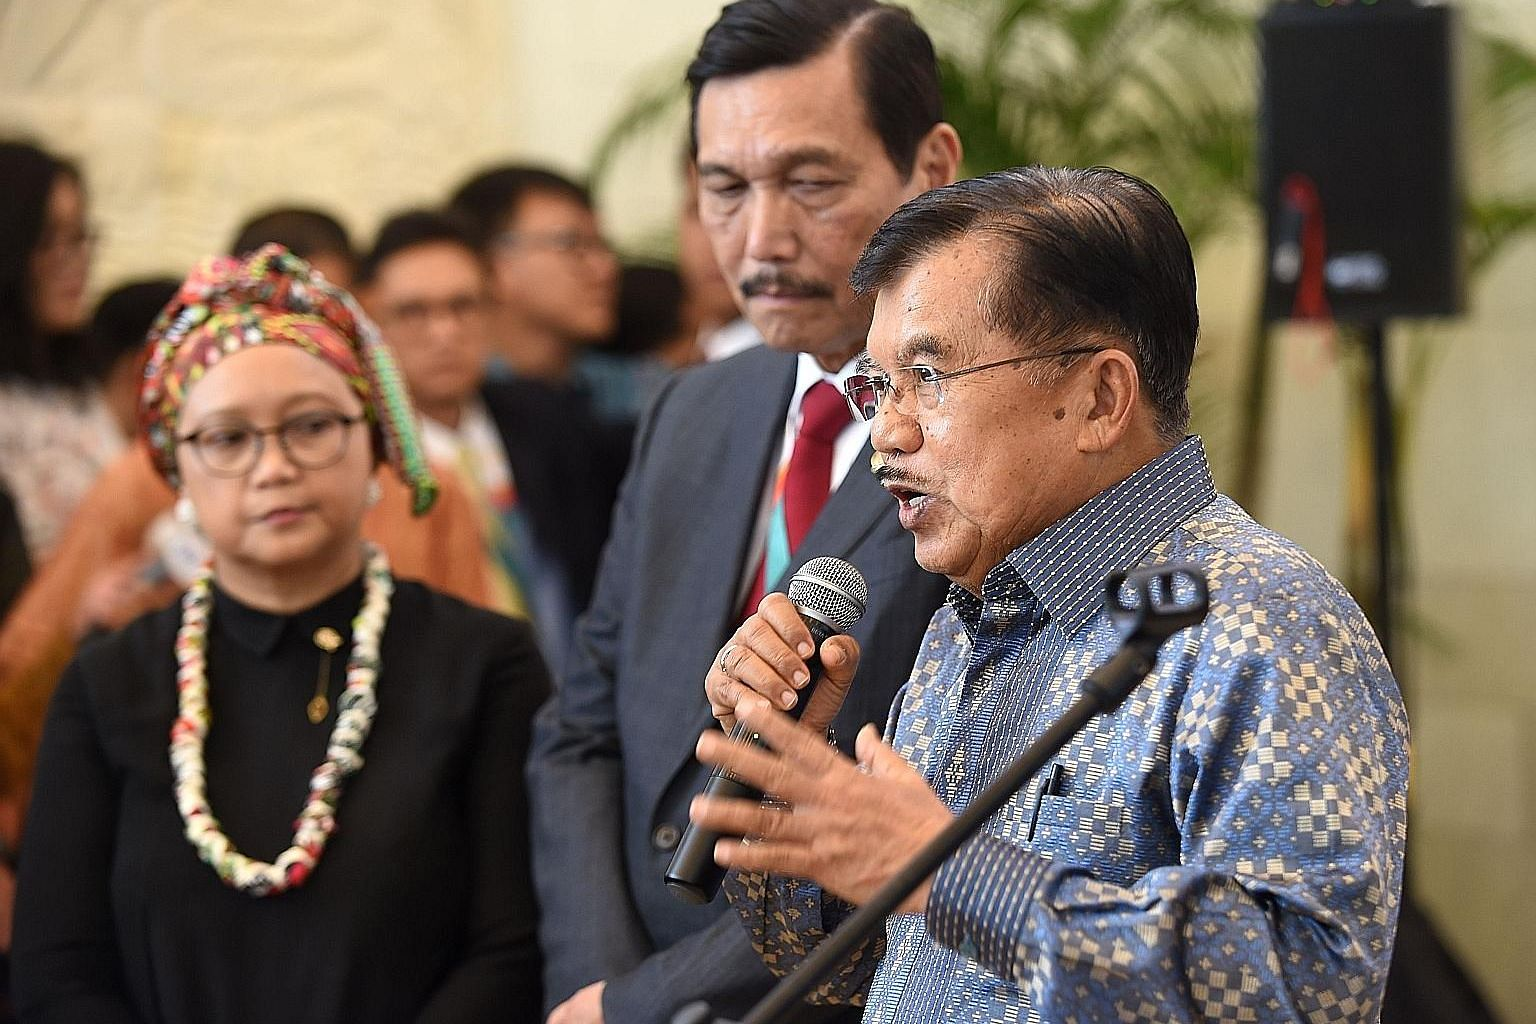 Mr Jusuf Kalla was vice-president under Dr Susilo Bambang Yudhoyono after they won the 2004 election. He became vice-president again when he paired up with Mr Joko Widodo in 2014.